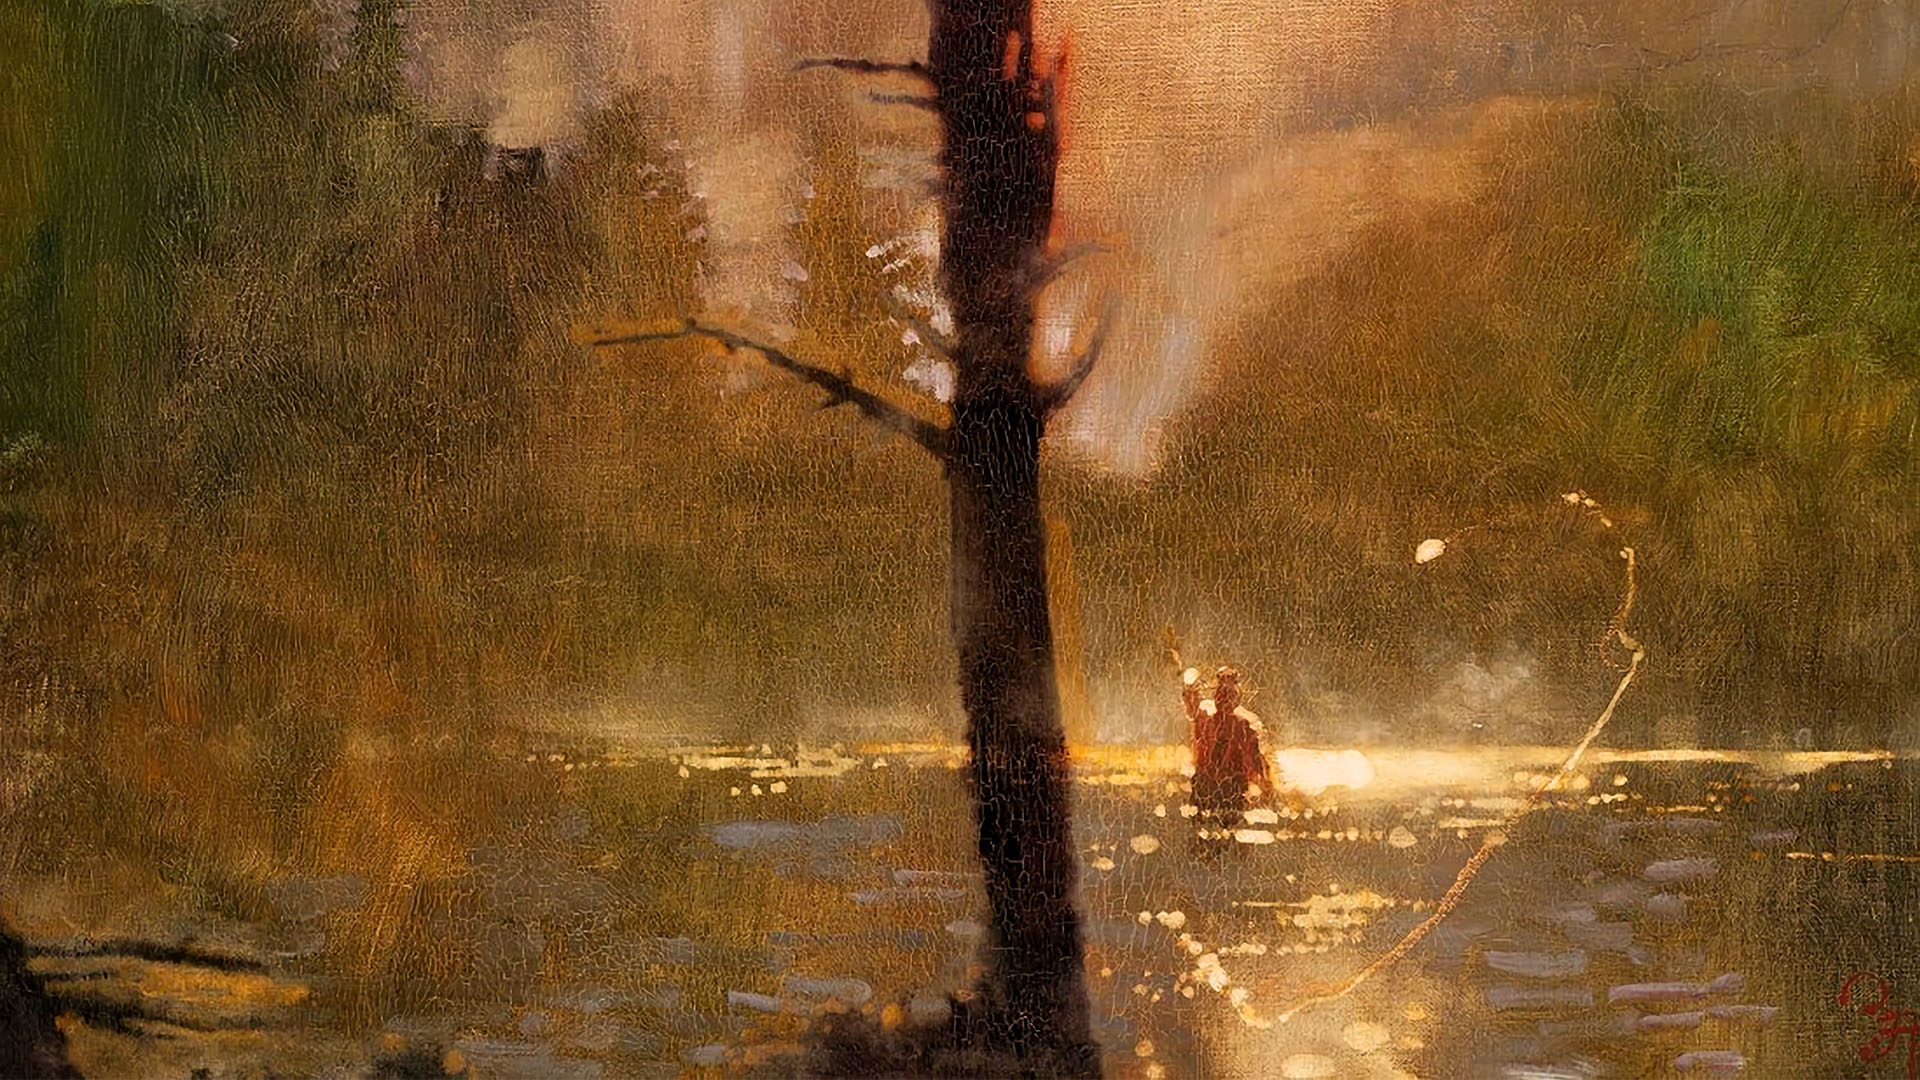 Bernie Fuchs - Fly Fishing 1920x1080